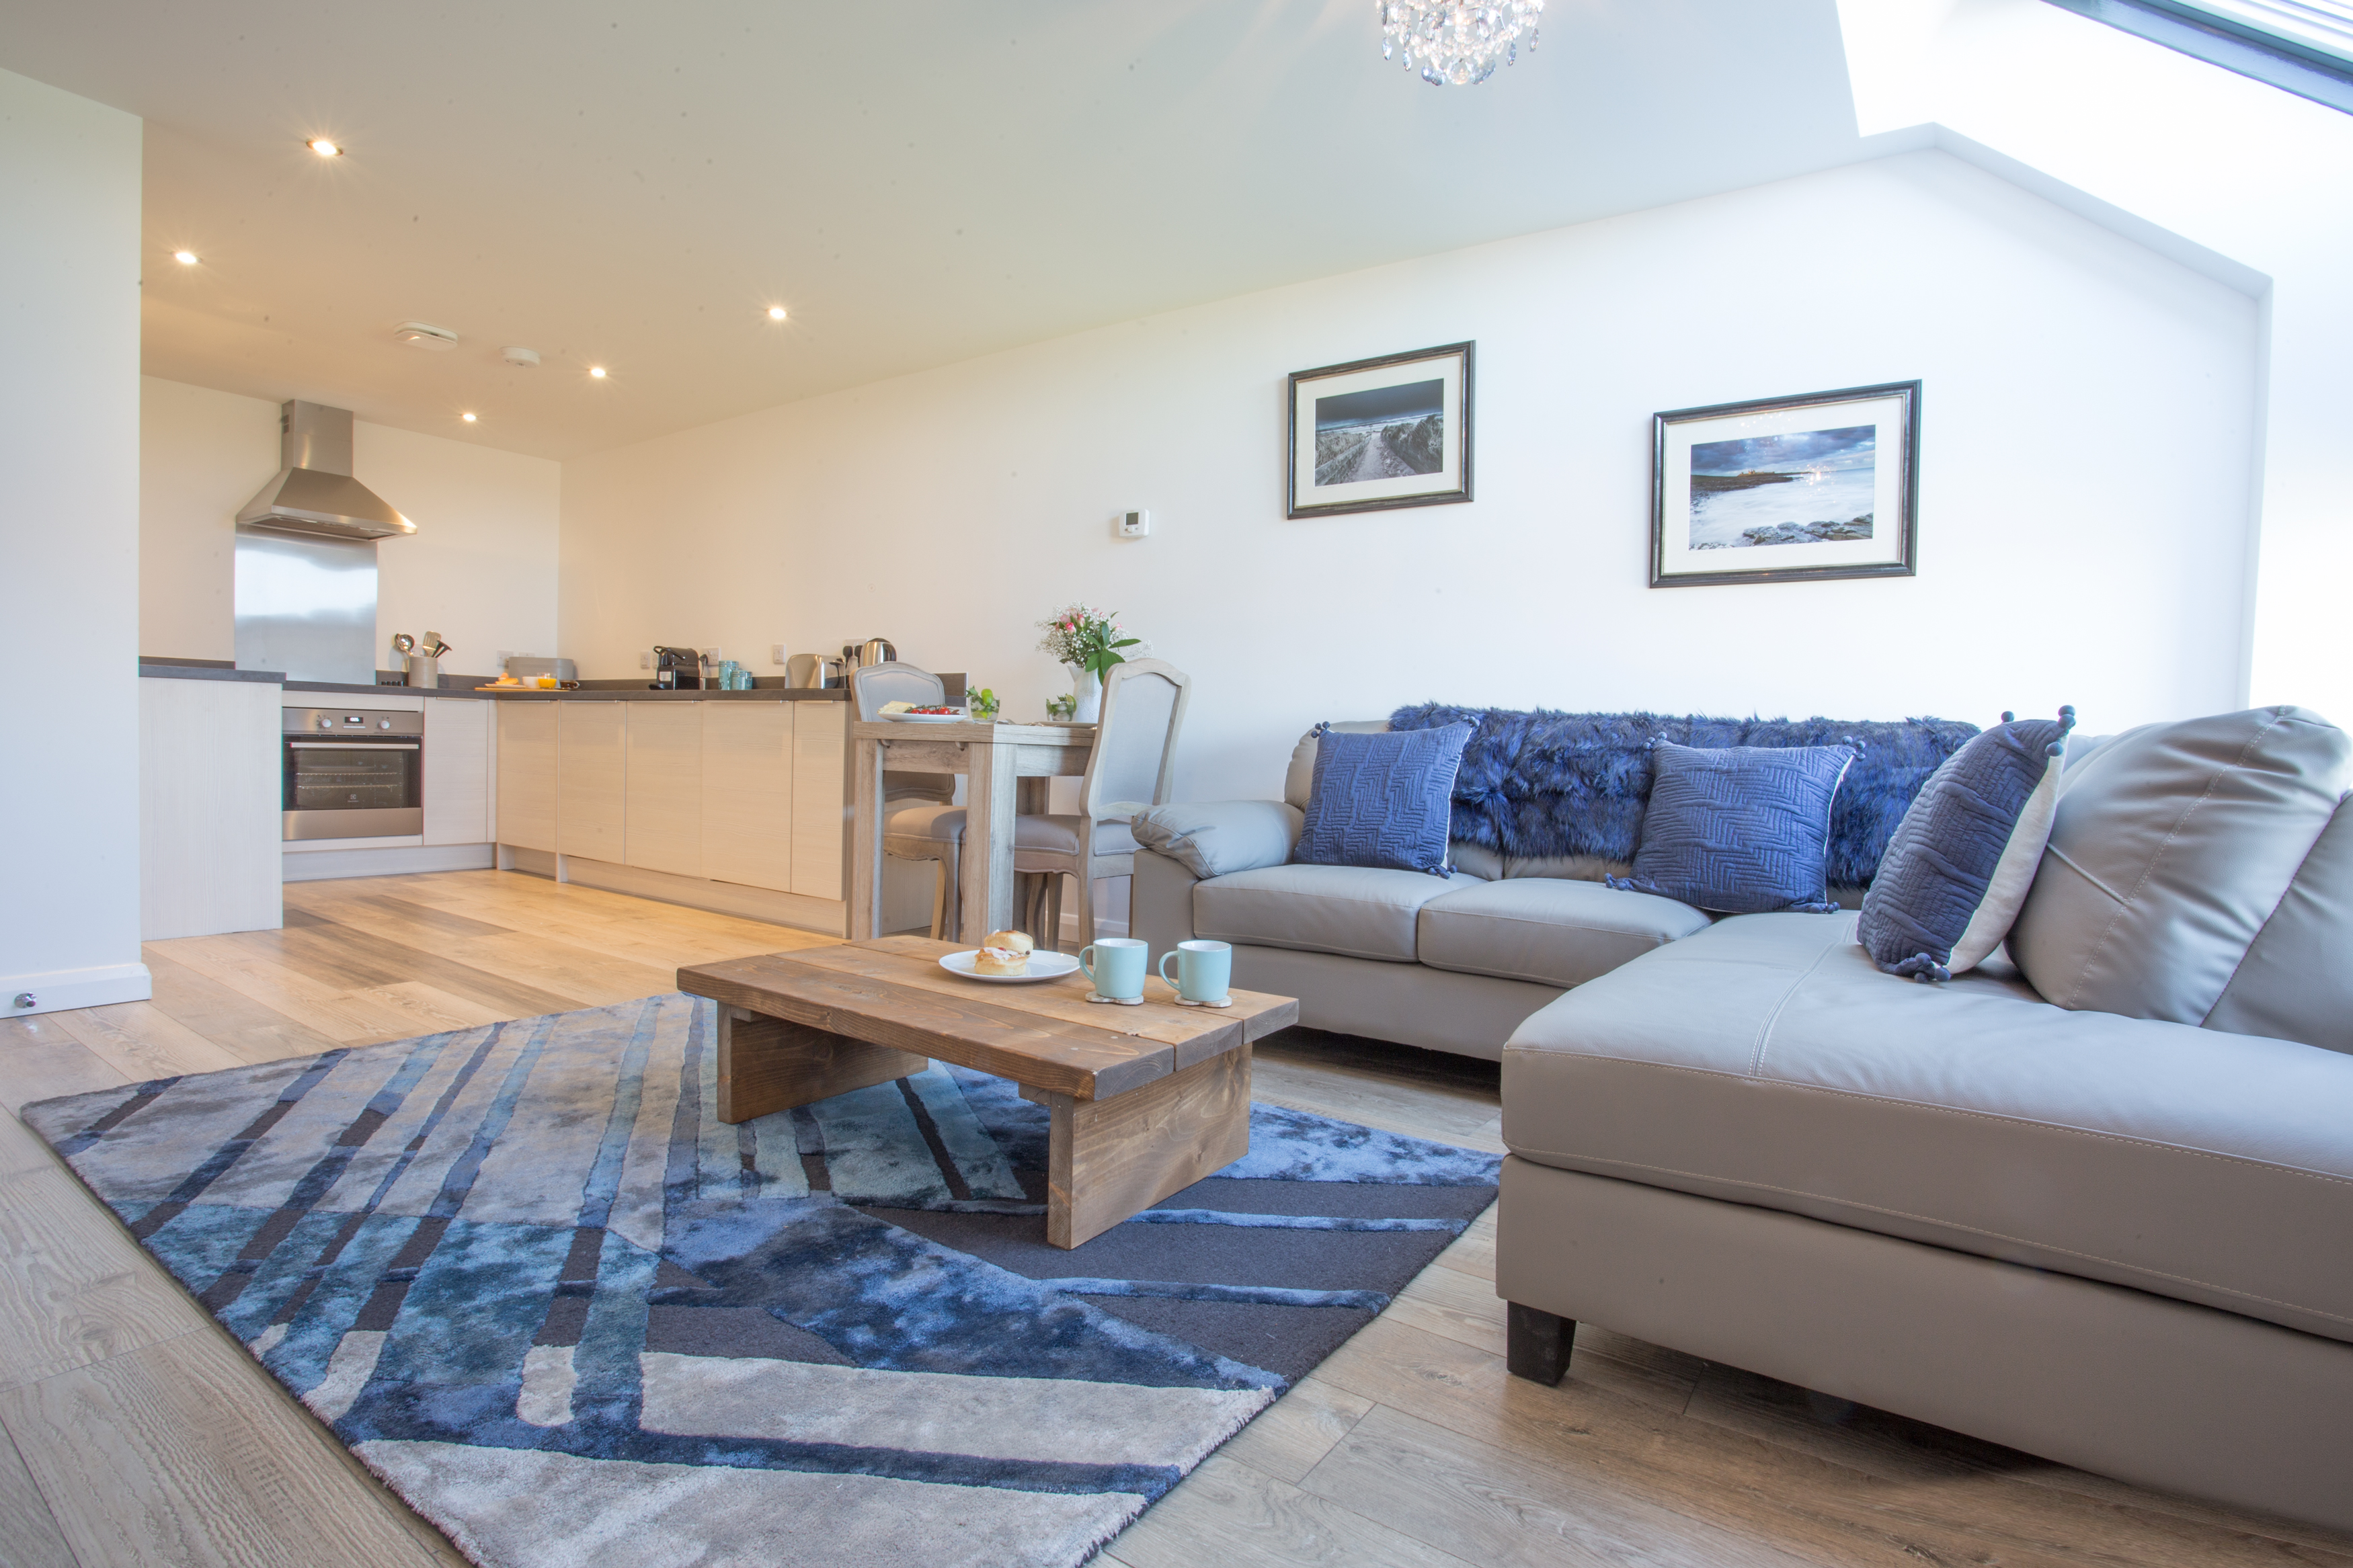 luxury apartment living in alnwick, apartments for holidays in alnwick luxury places to stay Alnwick